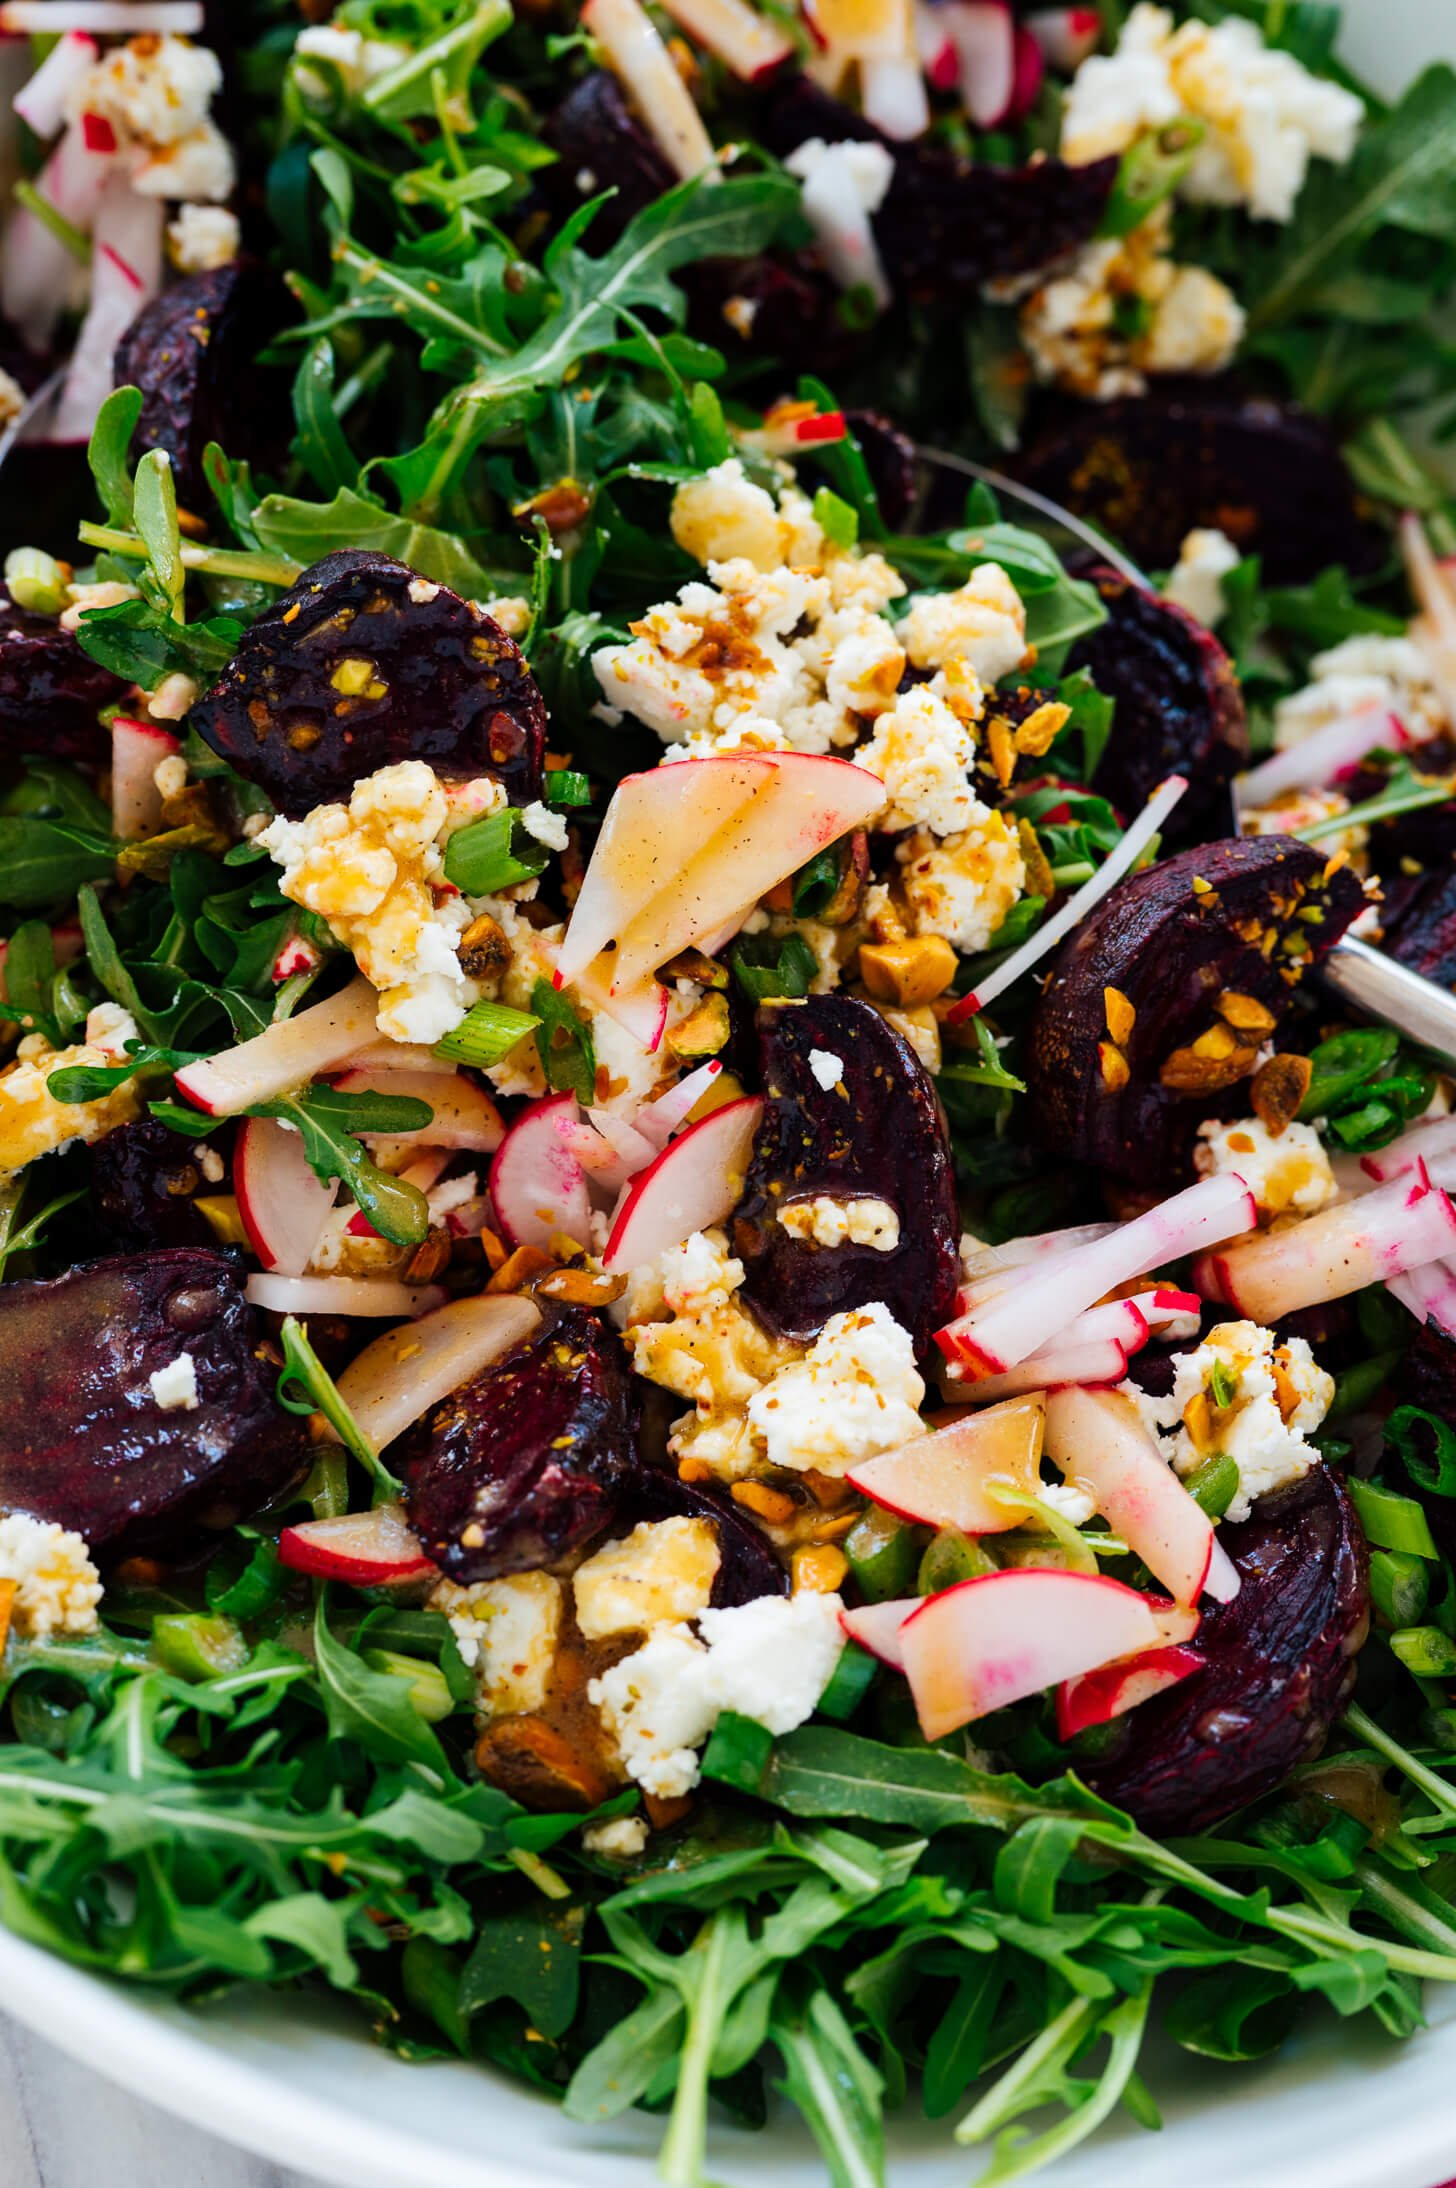 beet, goat cheese and pistachio salad with arugula